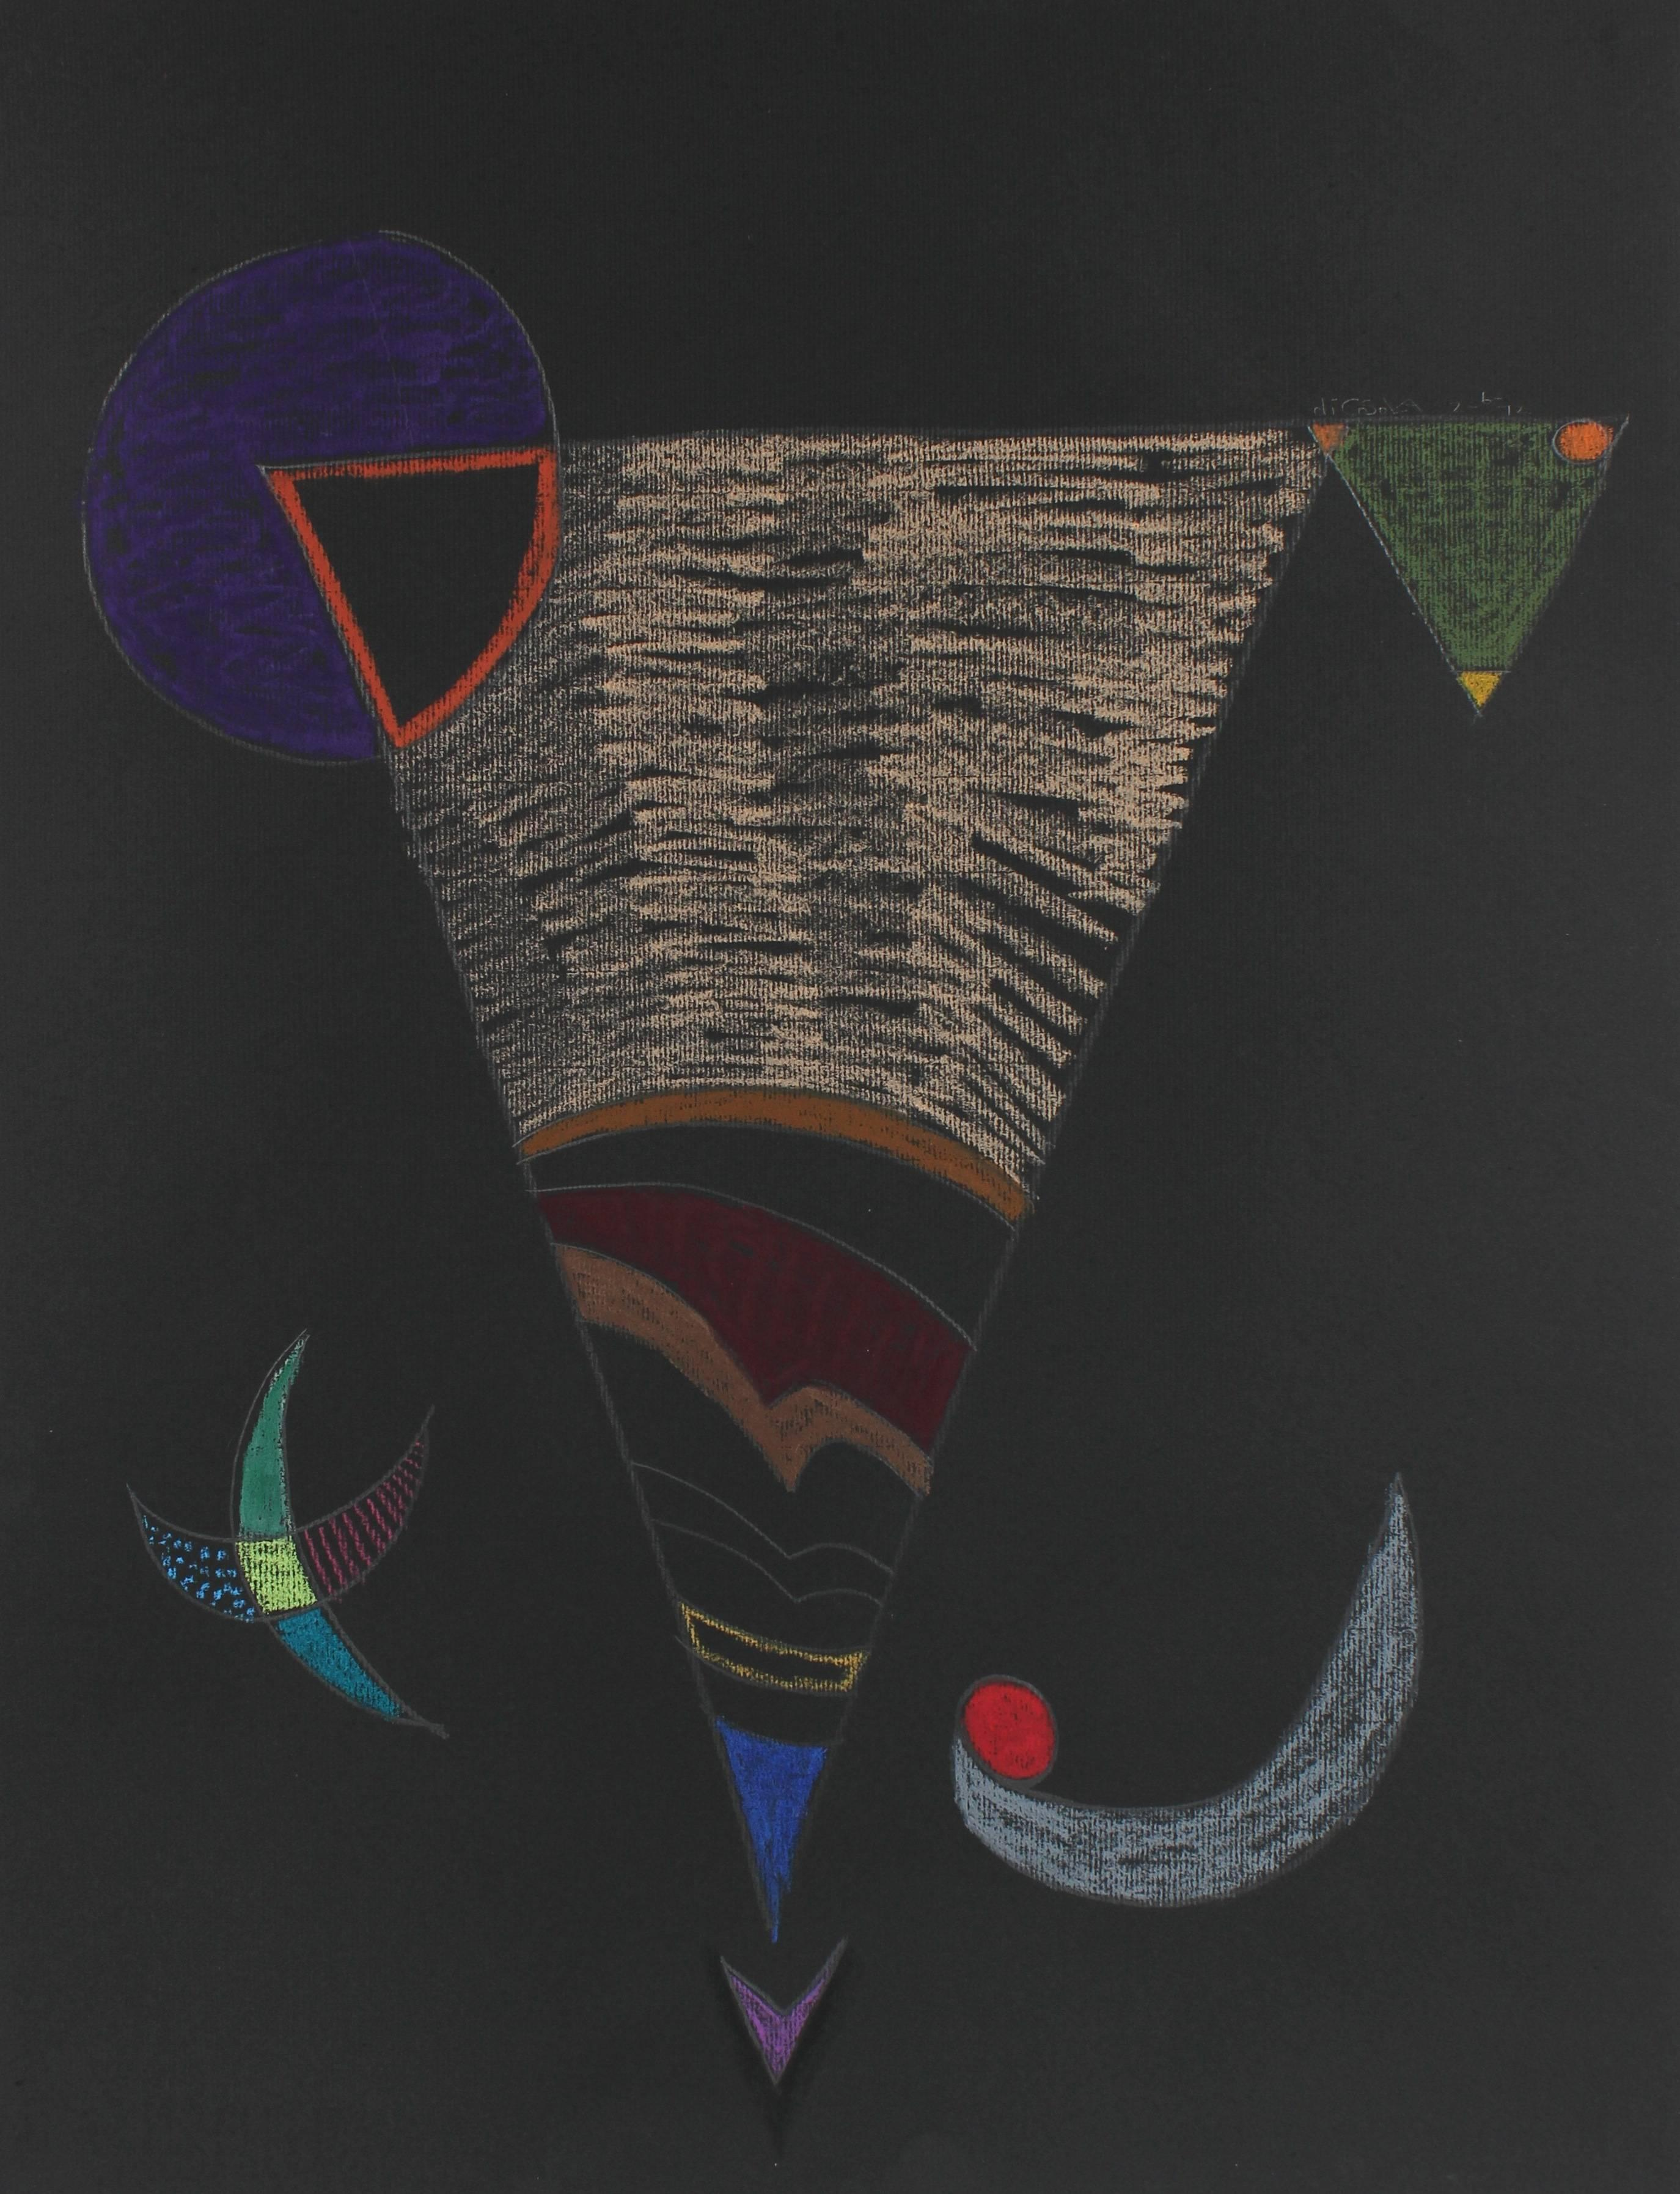 Triangle Abstract on Black in Pastel, 1972